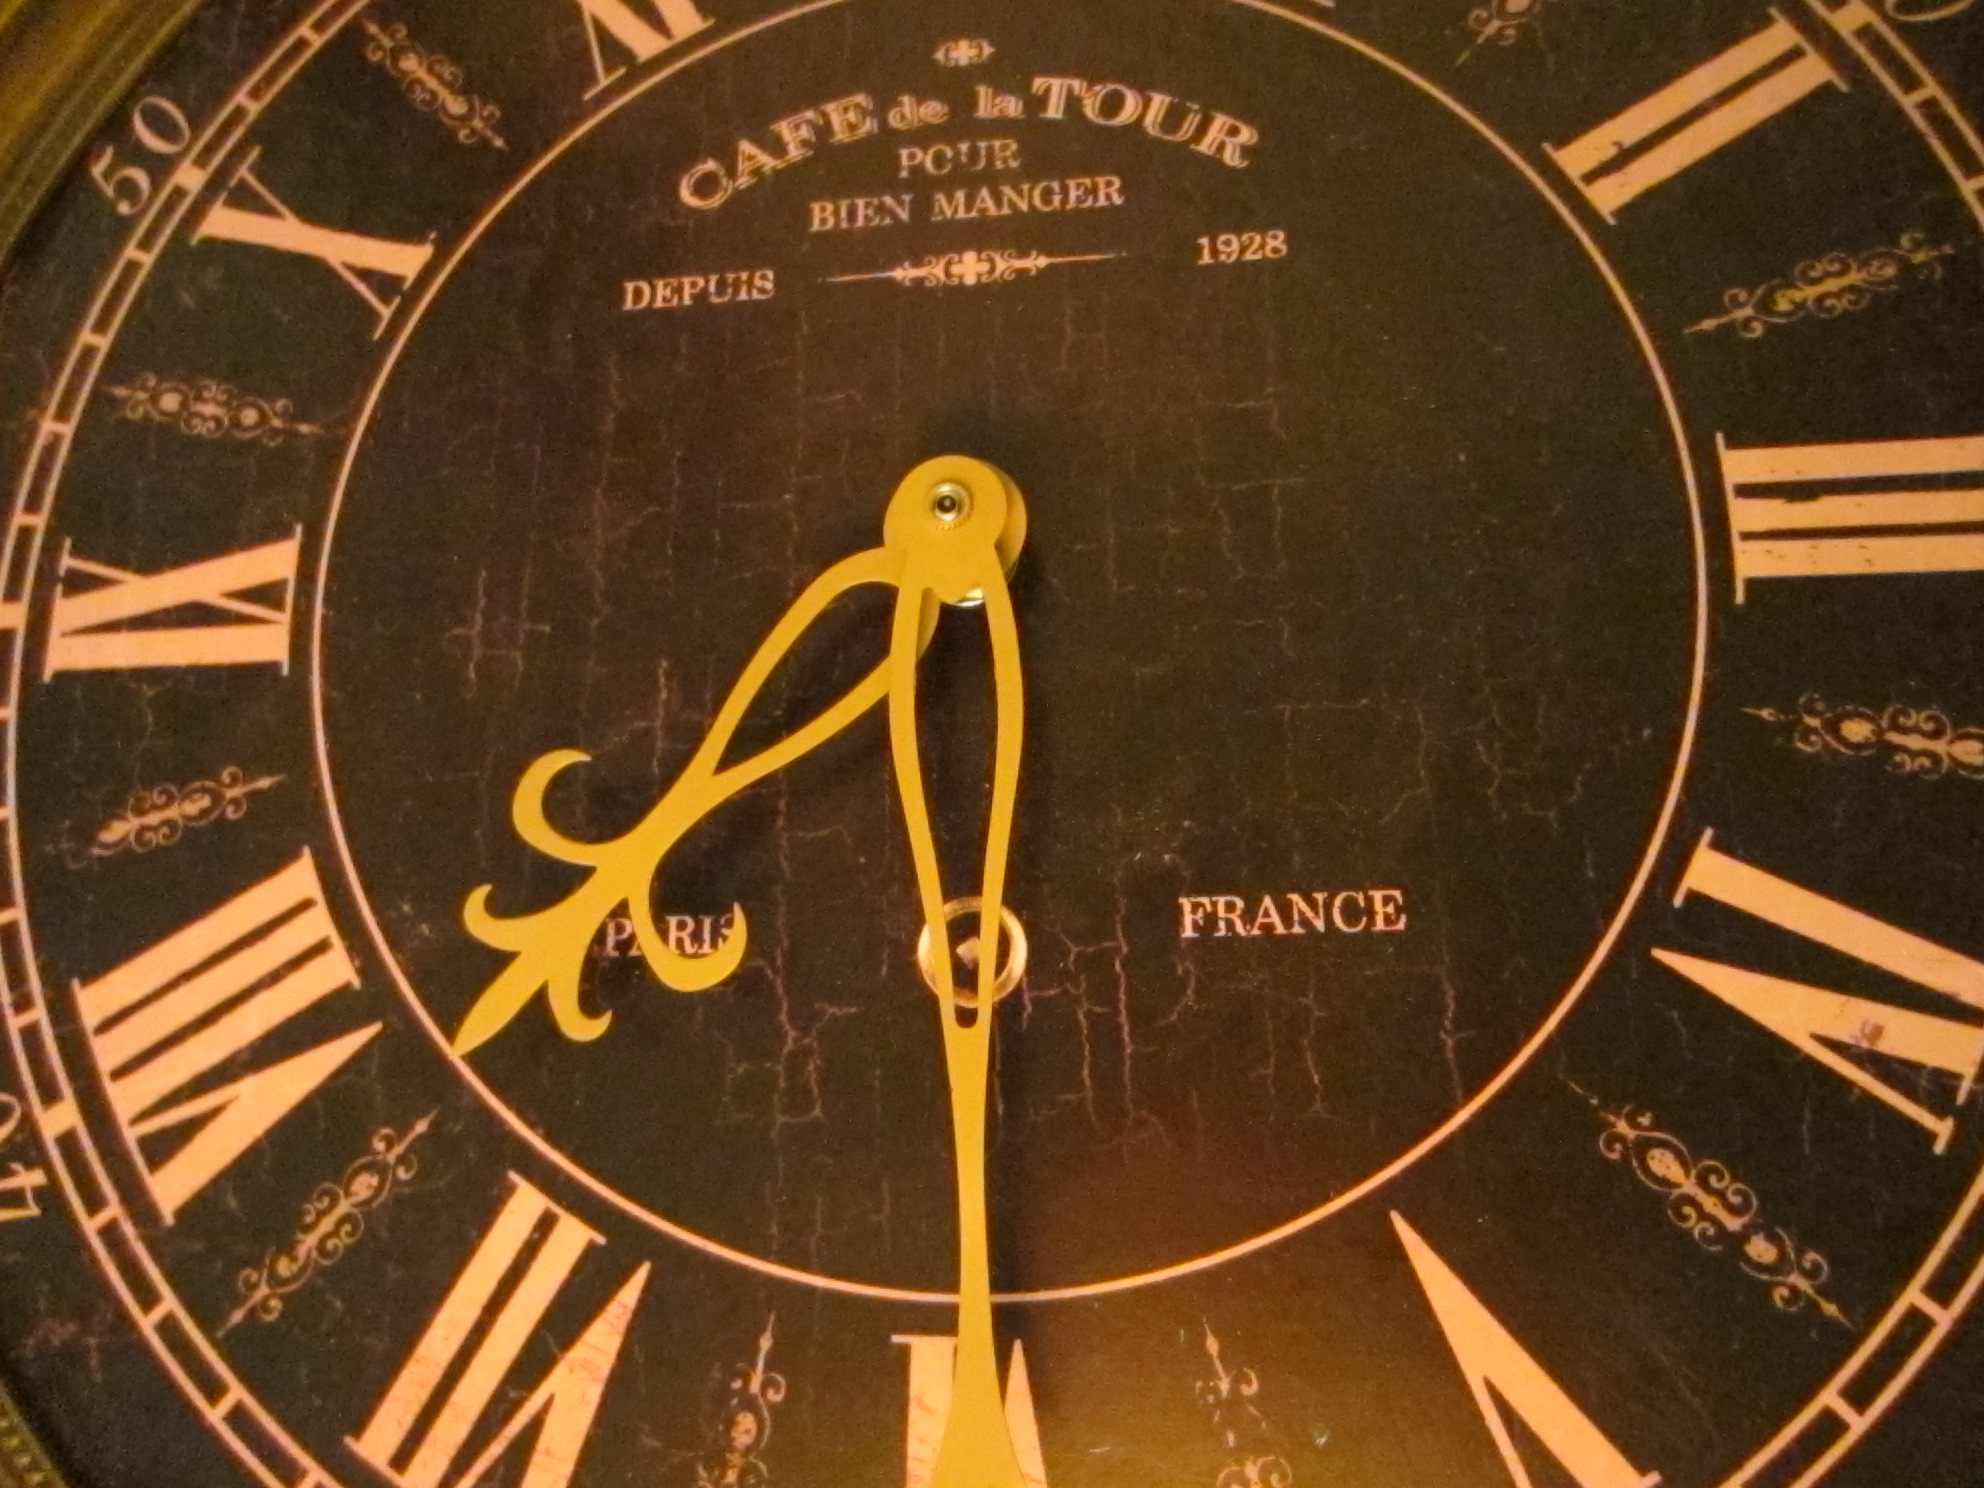 paris france industrial brass wall clock cafe de la tour pour bien manger 1928 style for sale. Black Bedroom Furniture Sets. Home Design Ideas